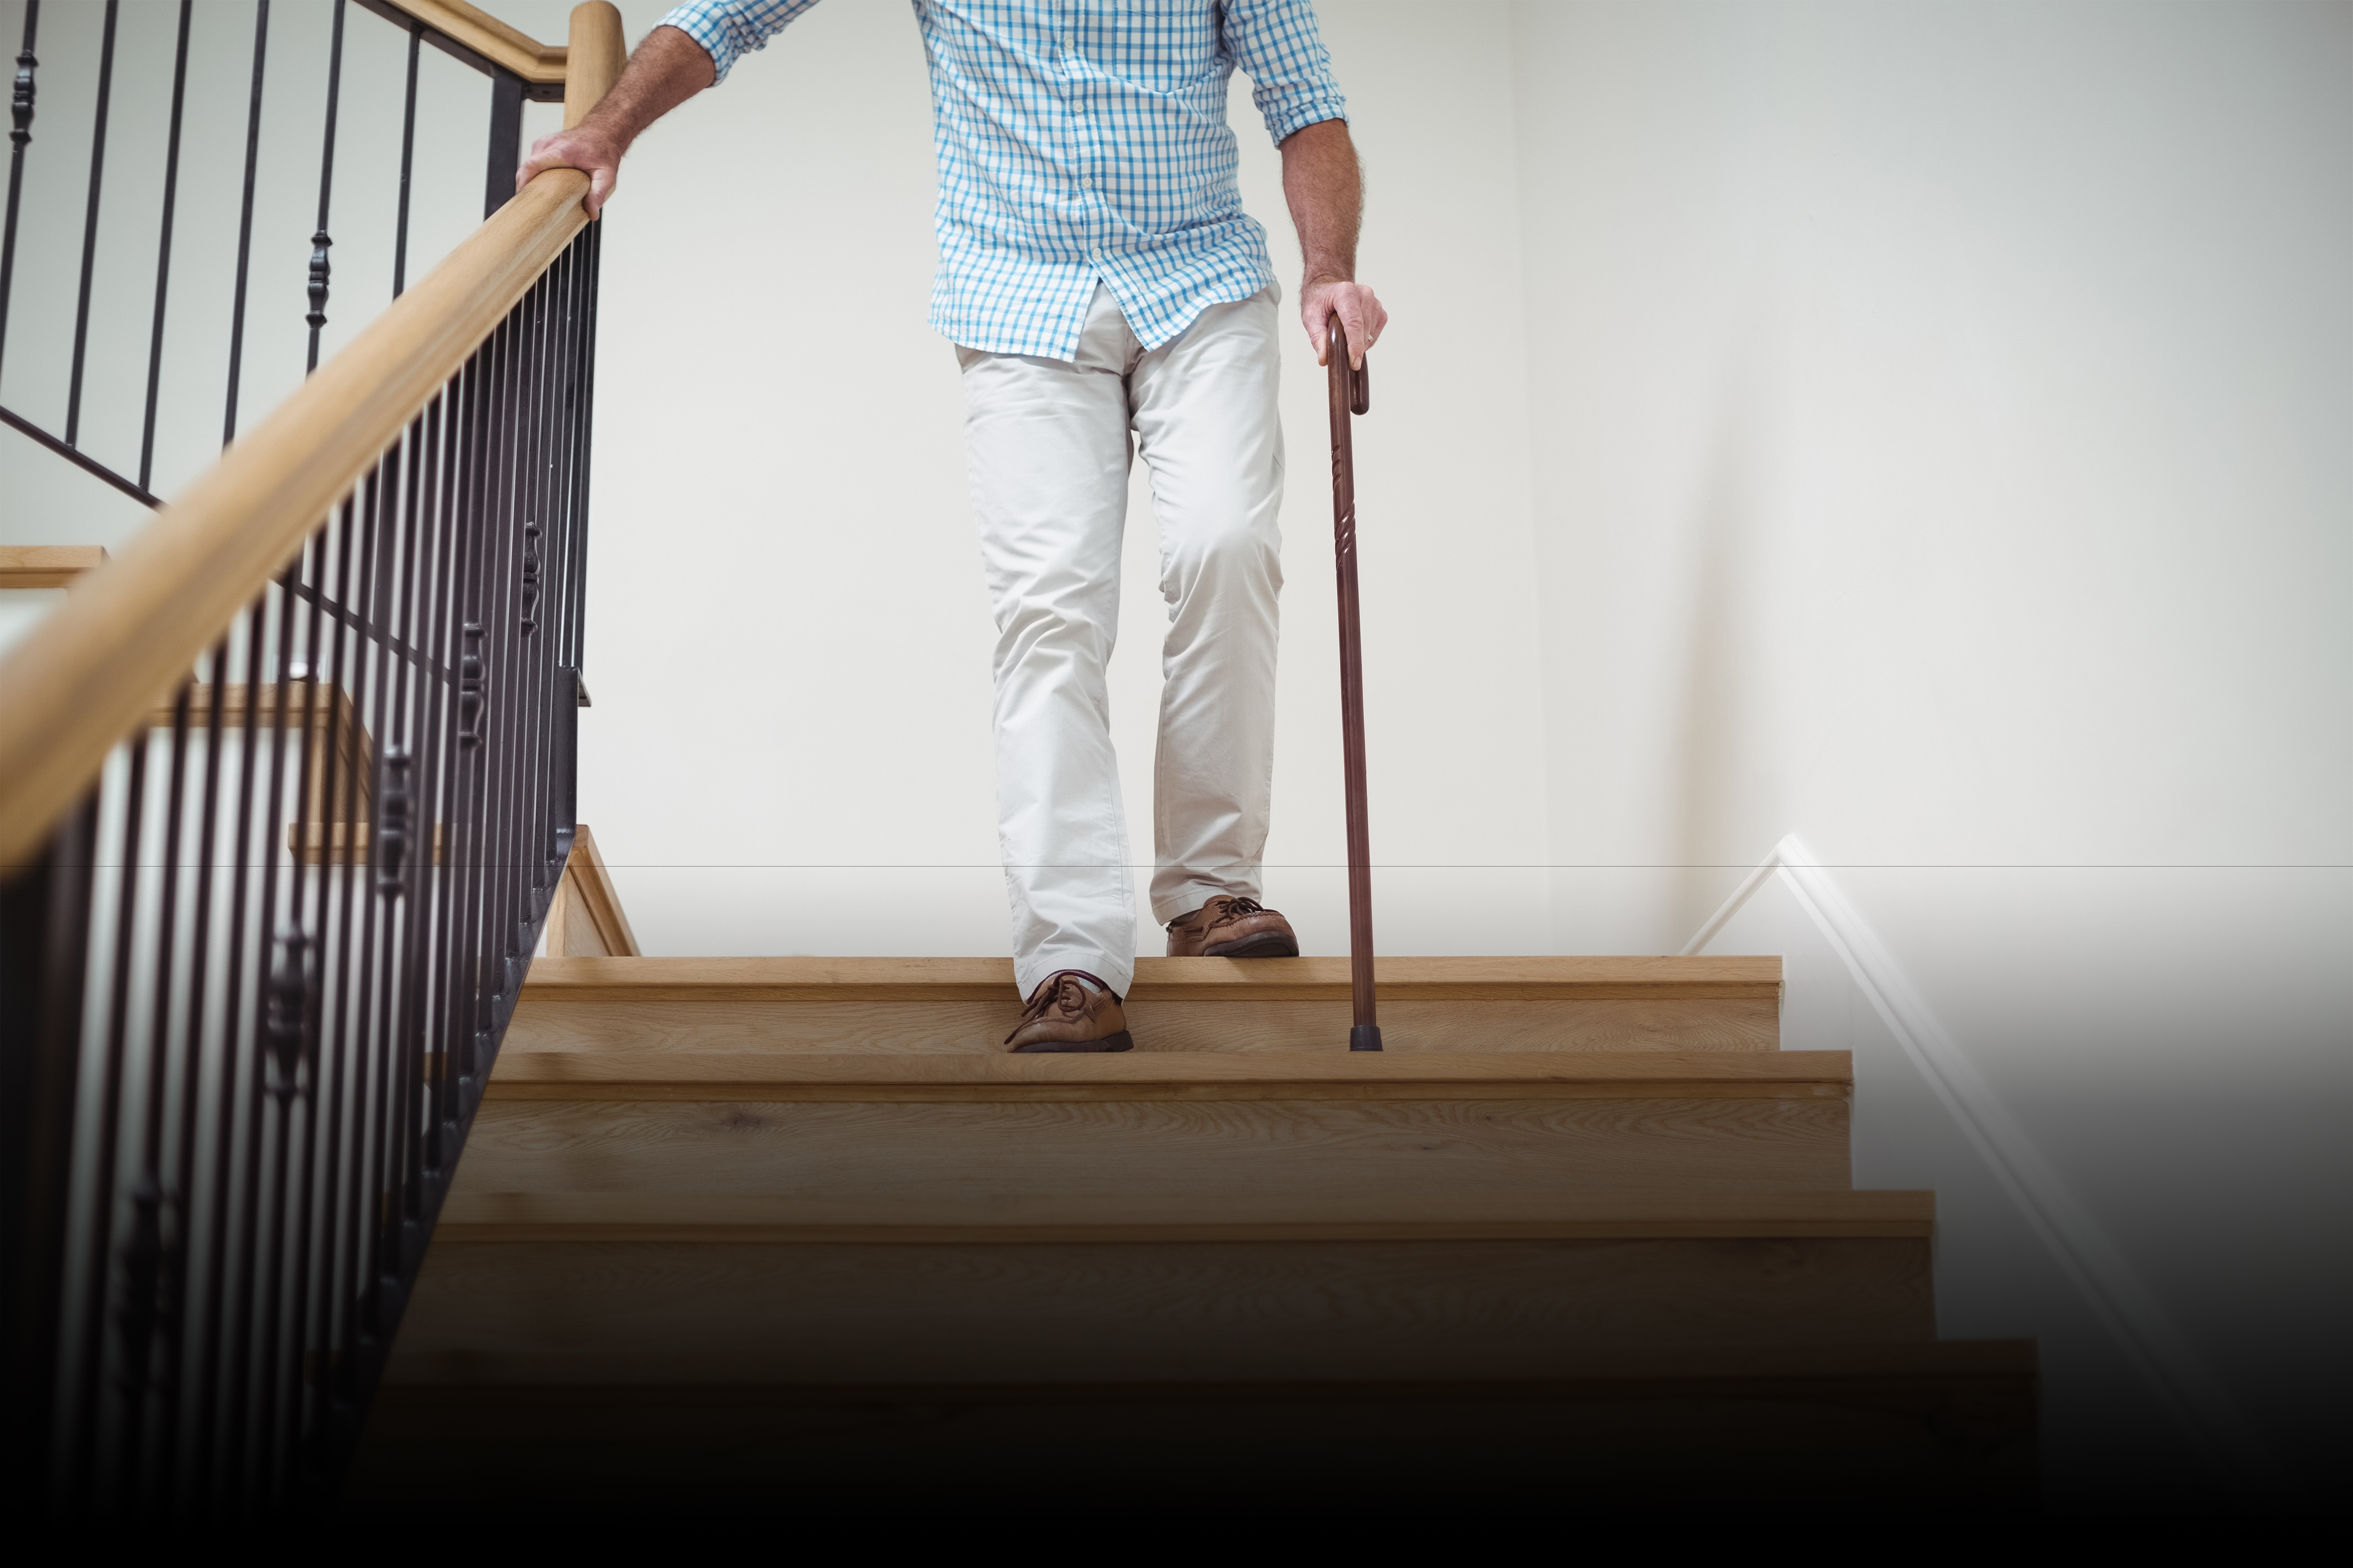 Stair Lift For Elderly Perfect Solution To Your Stairs Problem | Stair Rails For Elderly | Porch | Stair Climbing | Stainless Steel | Stair Climber | Cmmc Handrail